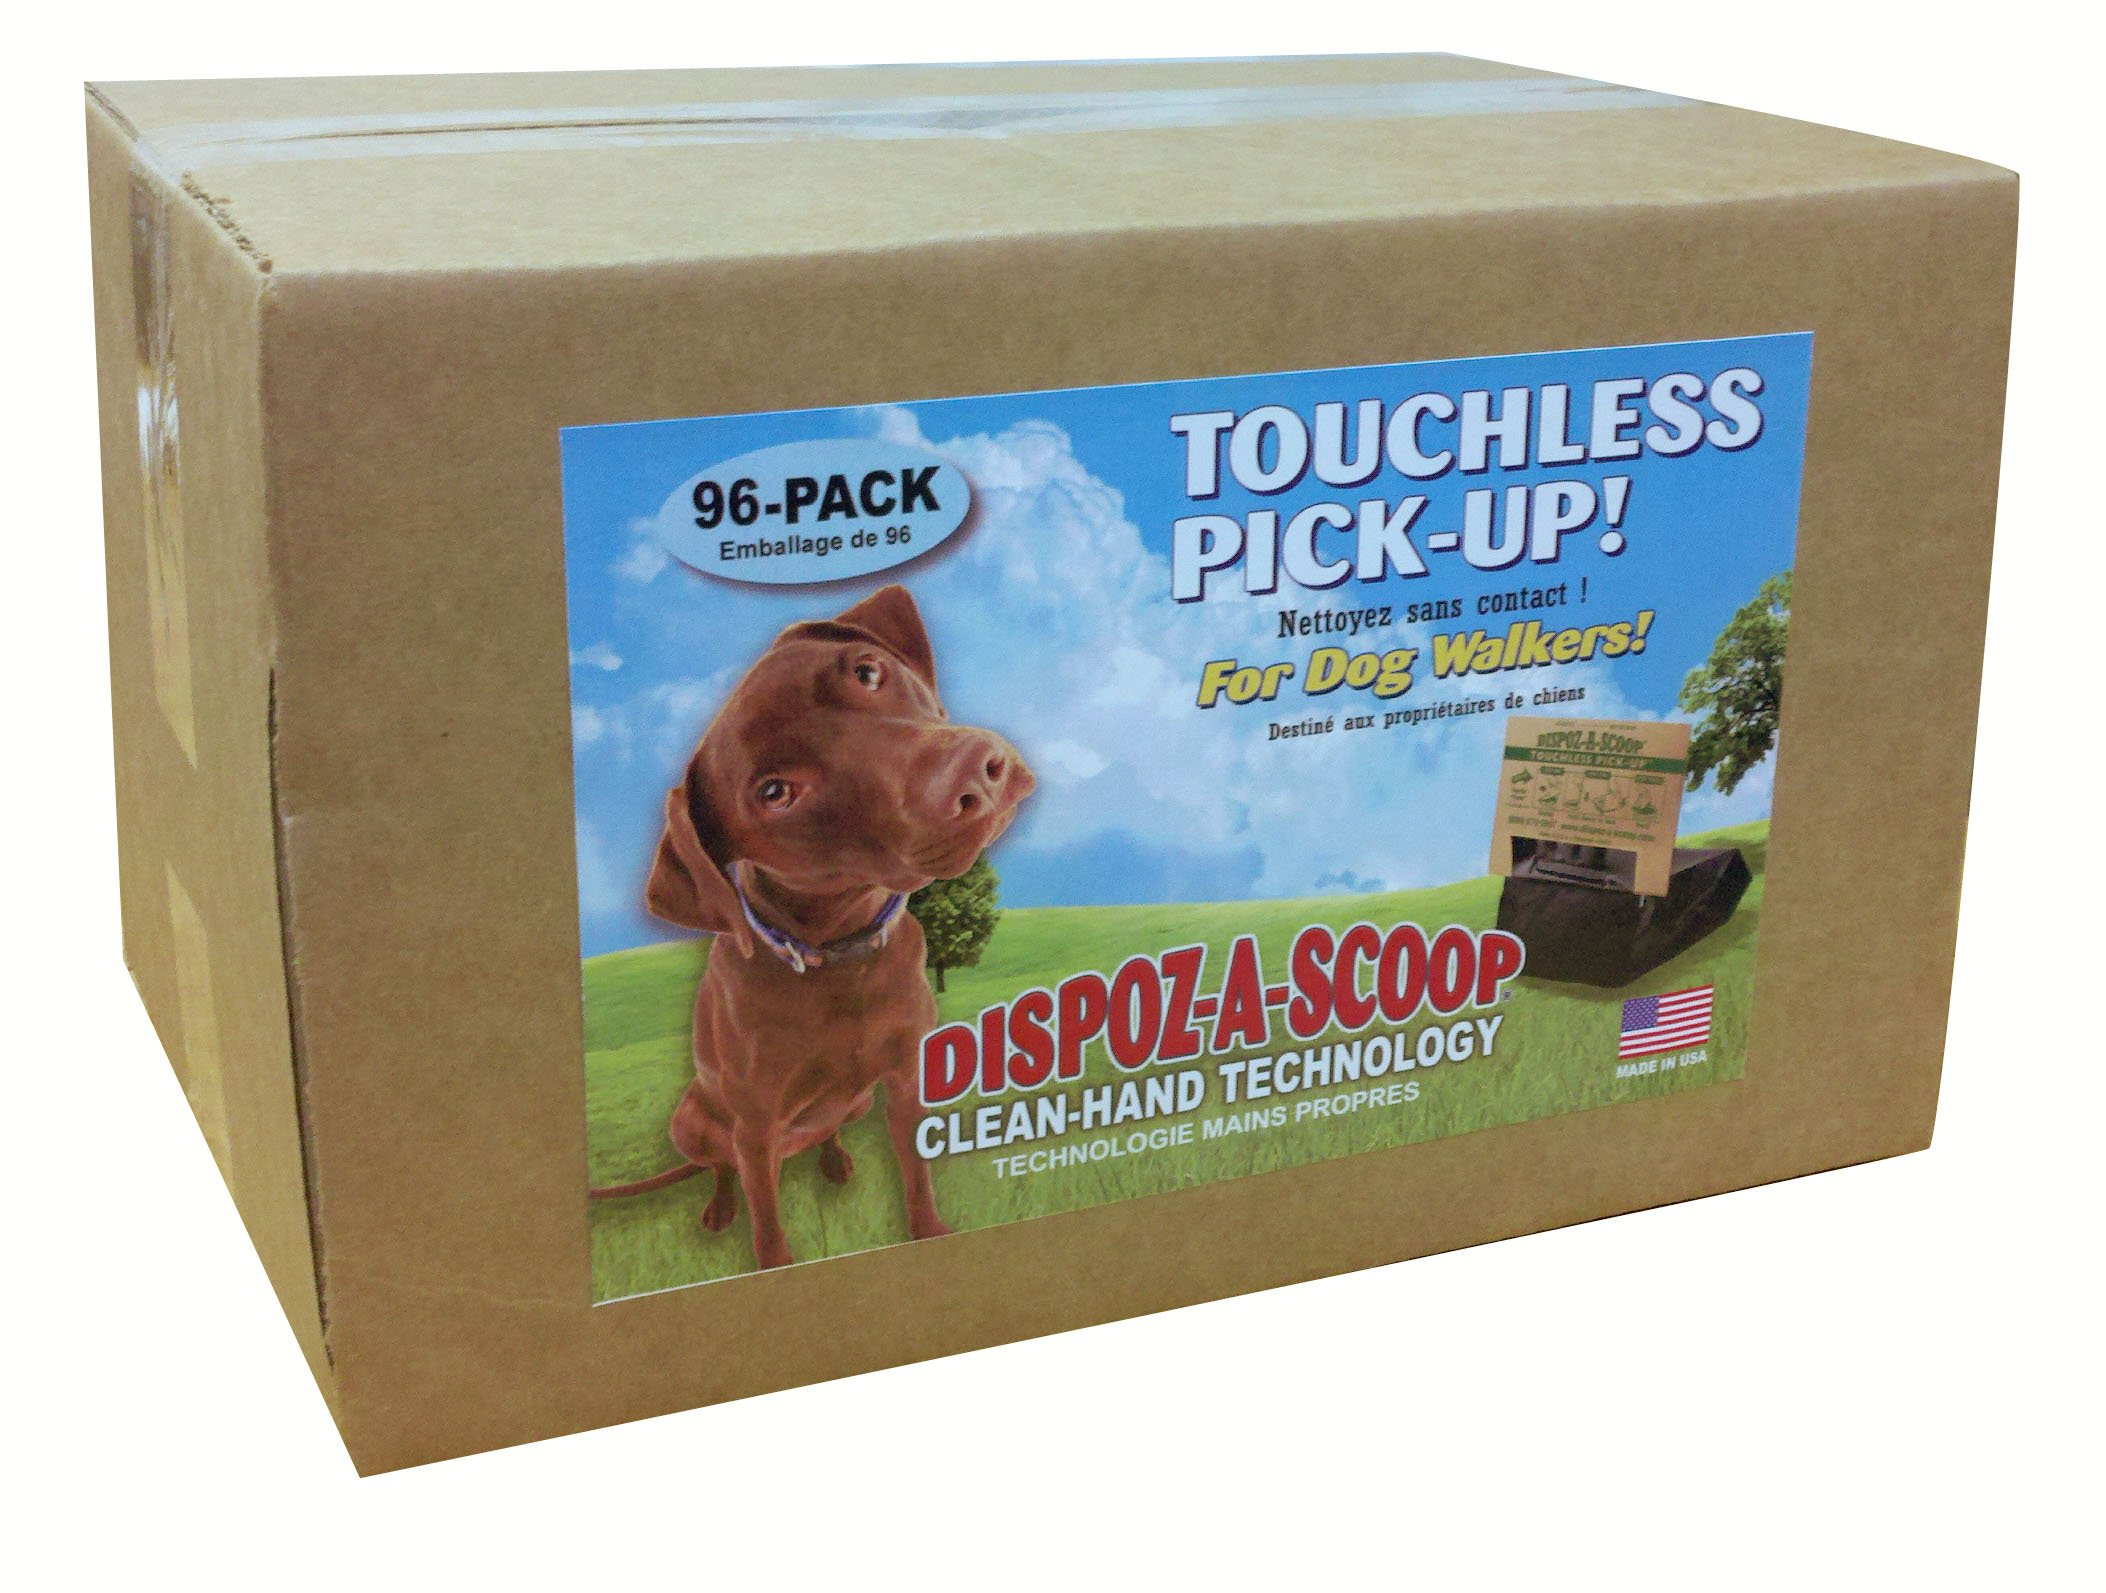 HealthPro Dispoz-A-Scoops for Dogs - 96 pack by Dispoz-A-Scoop